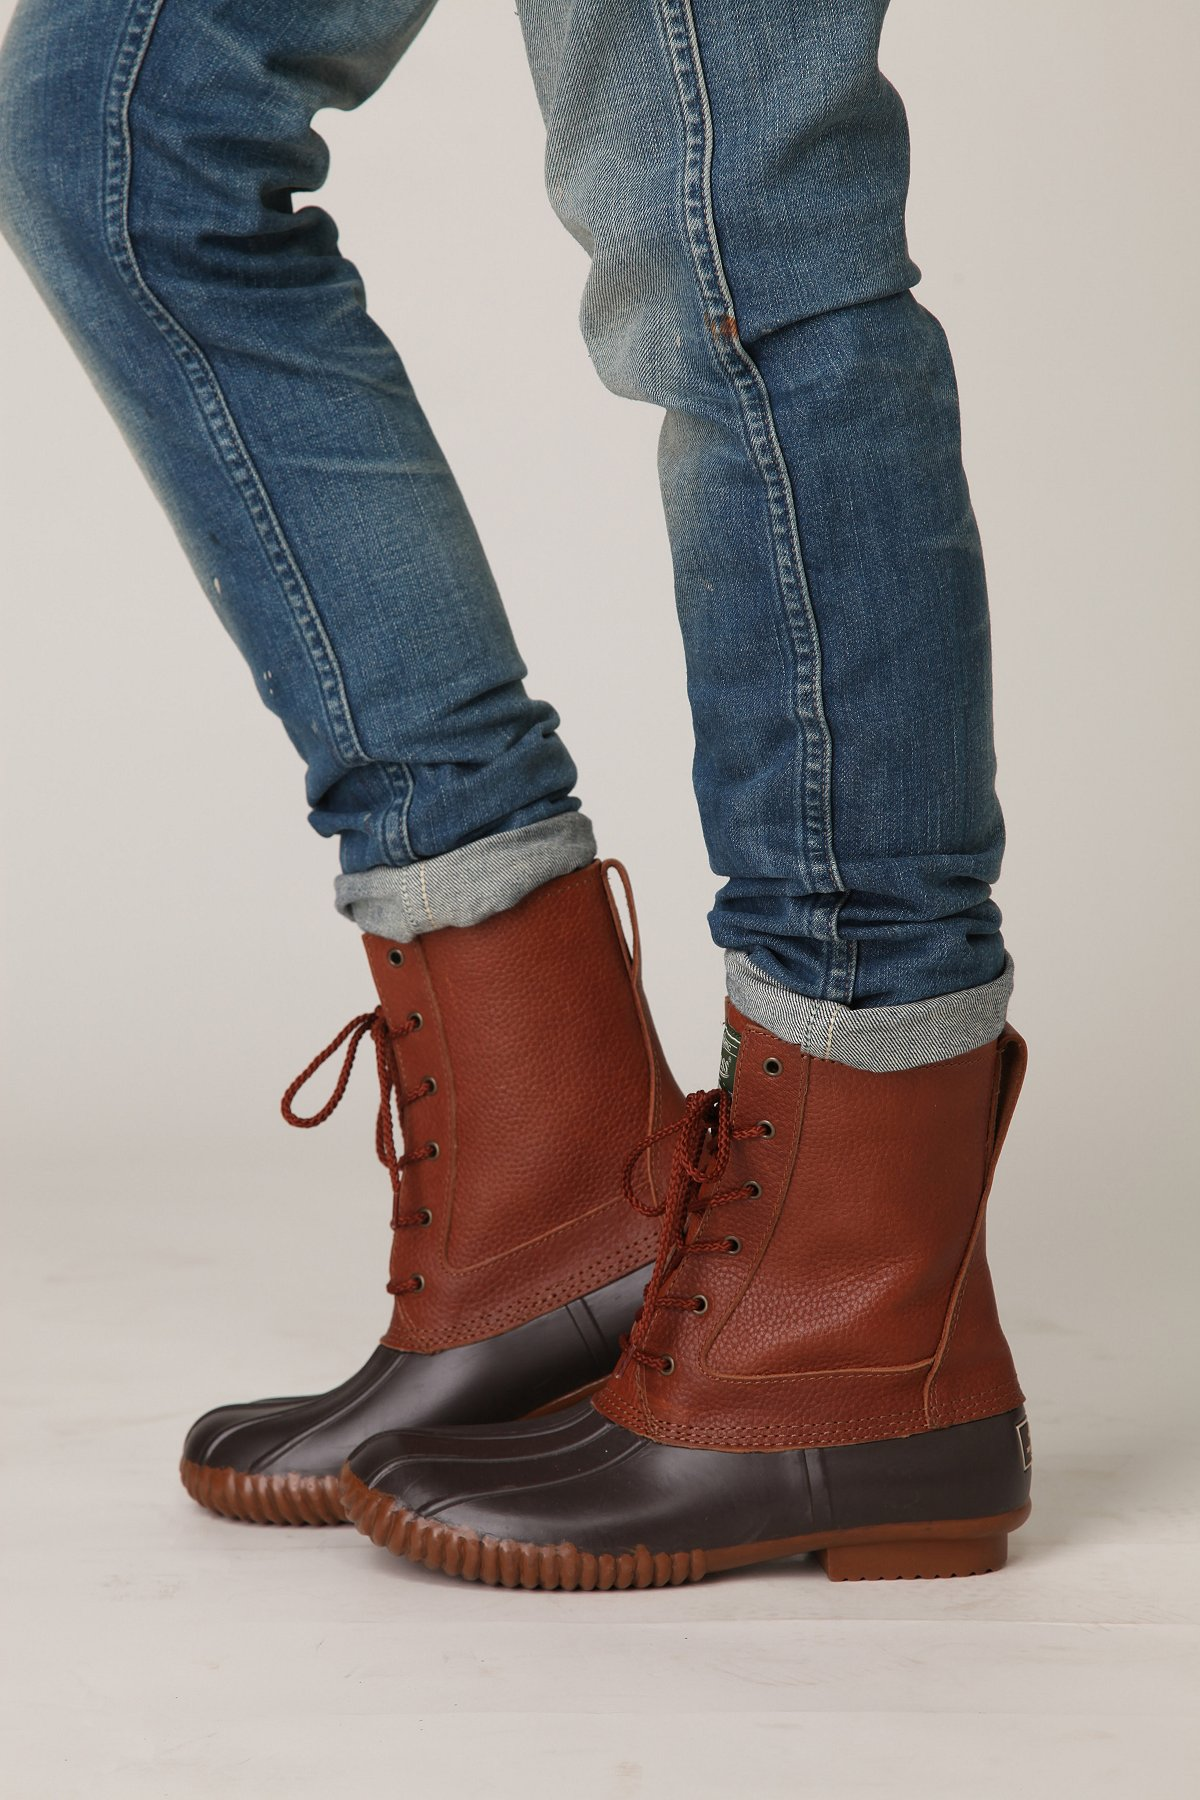 Bass Lace Up Duck Boot